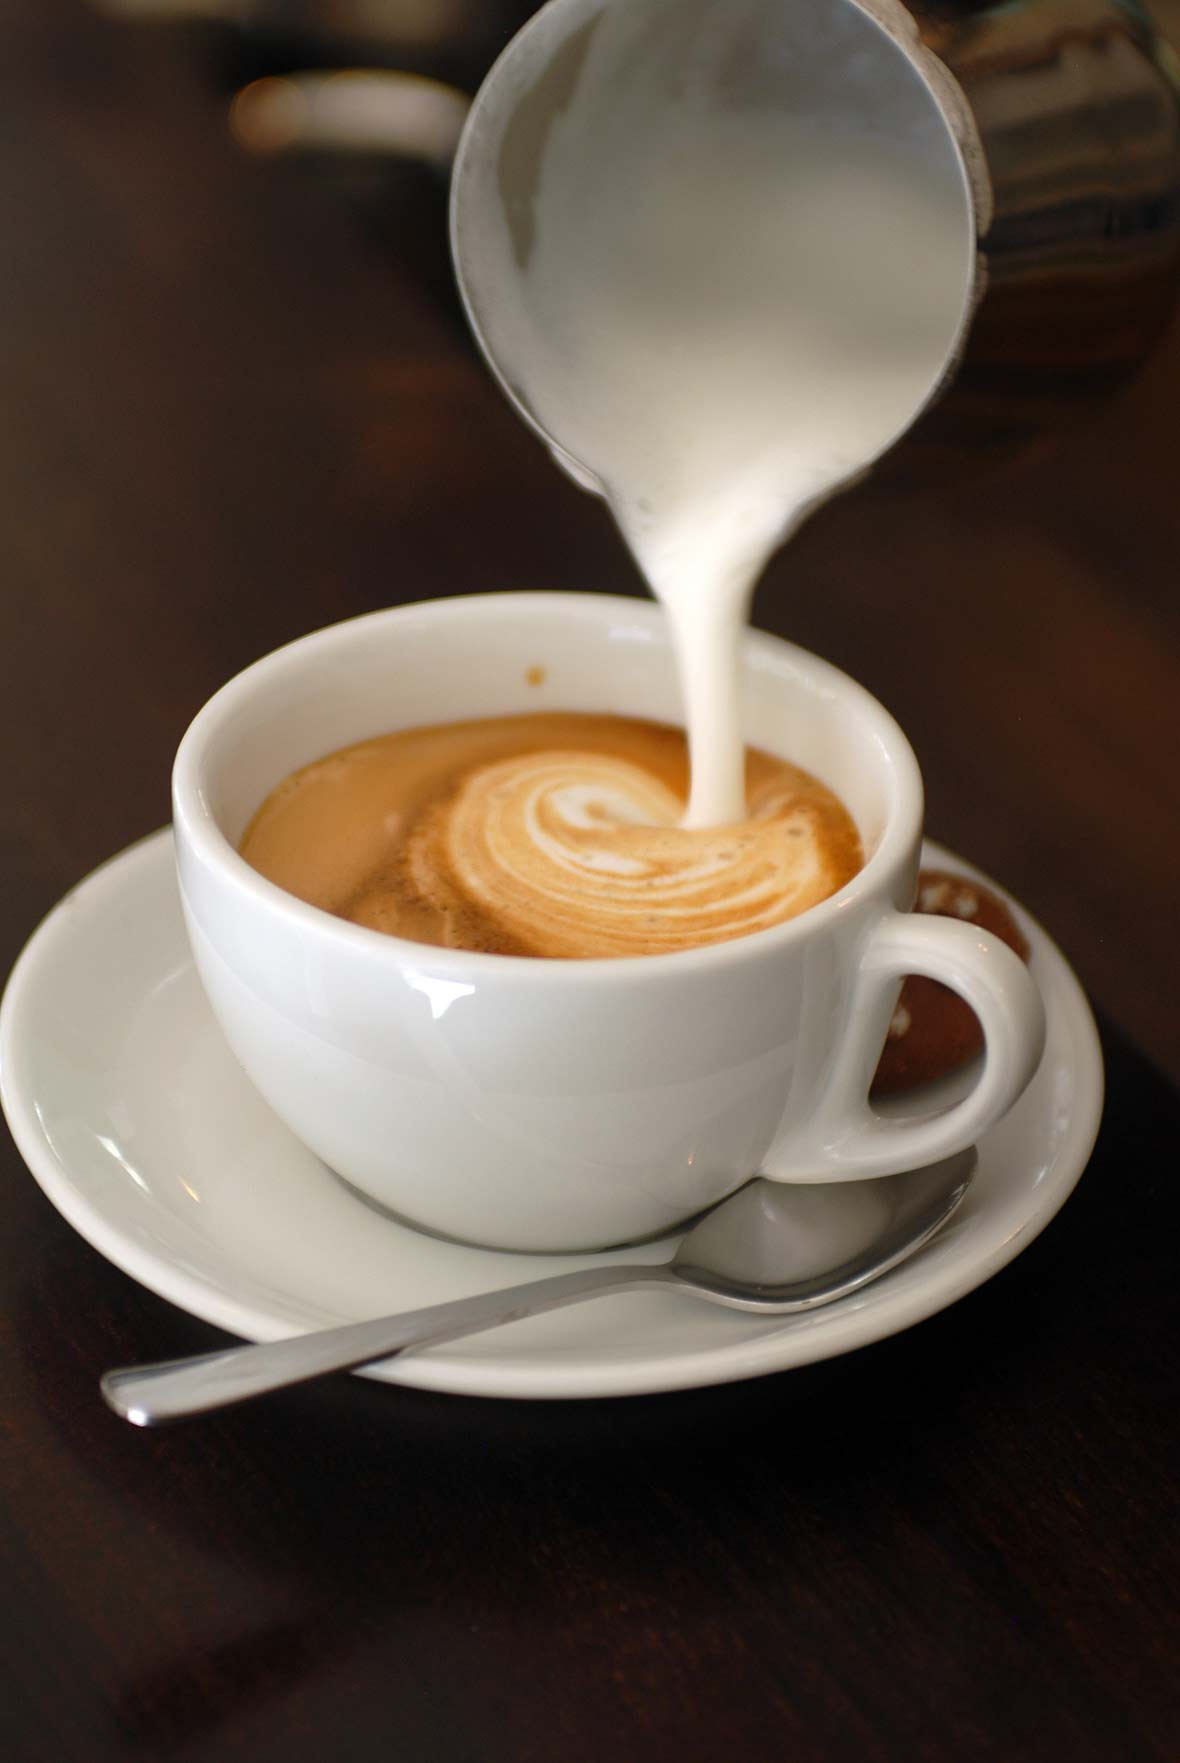 A cup of cappuccino on a saucer with milk being poured into it.